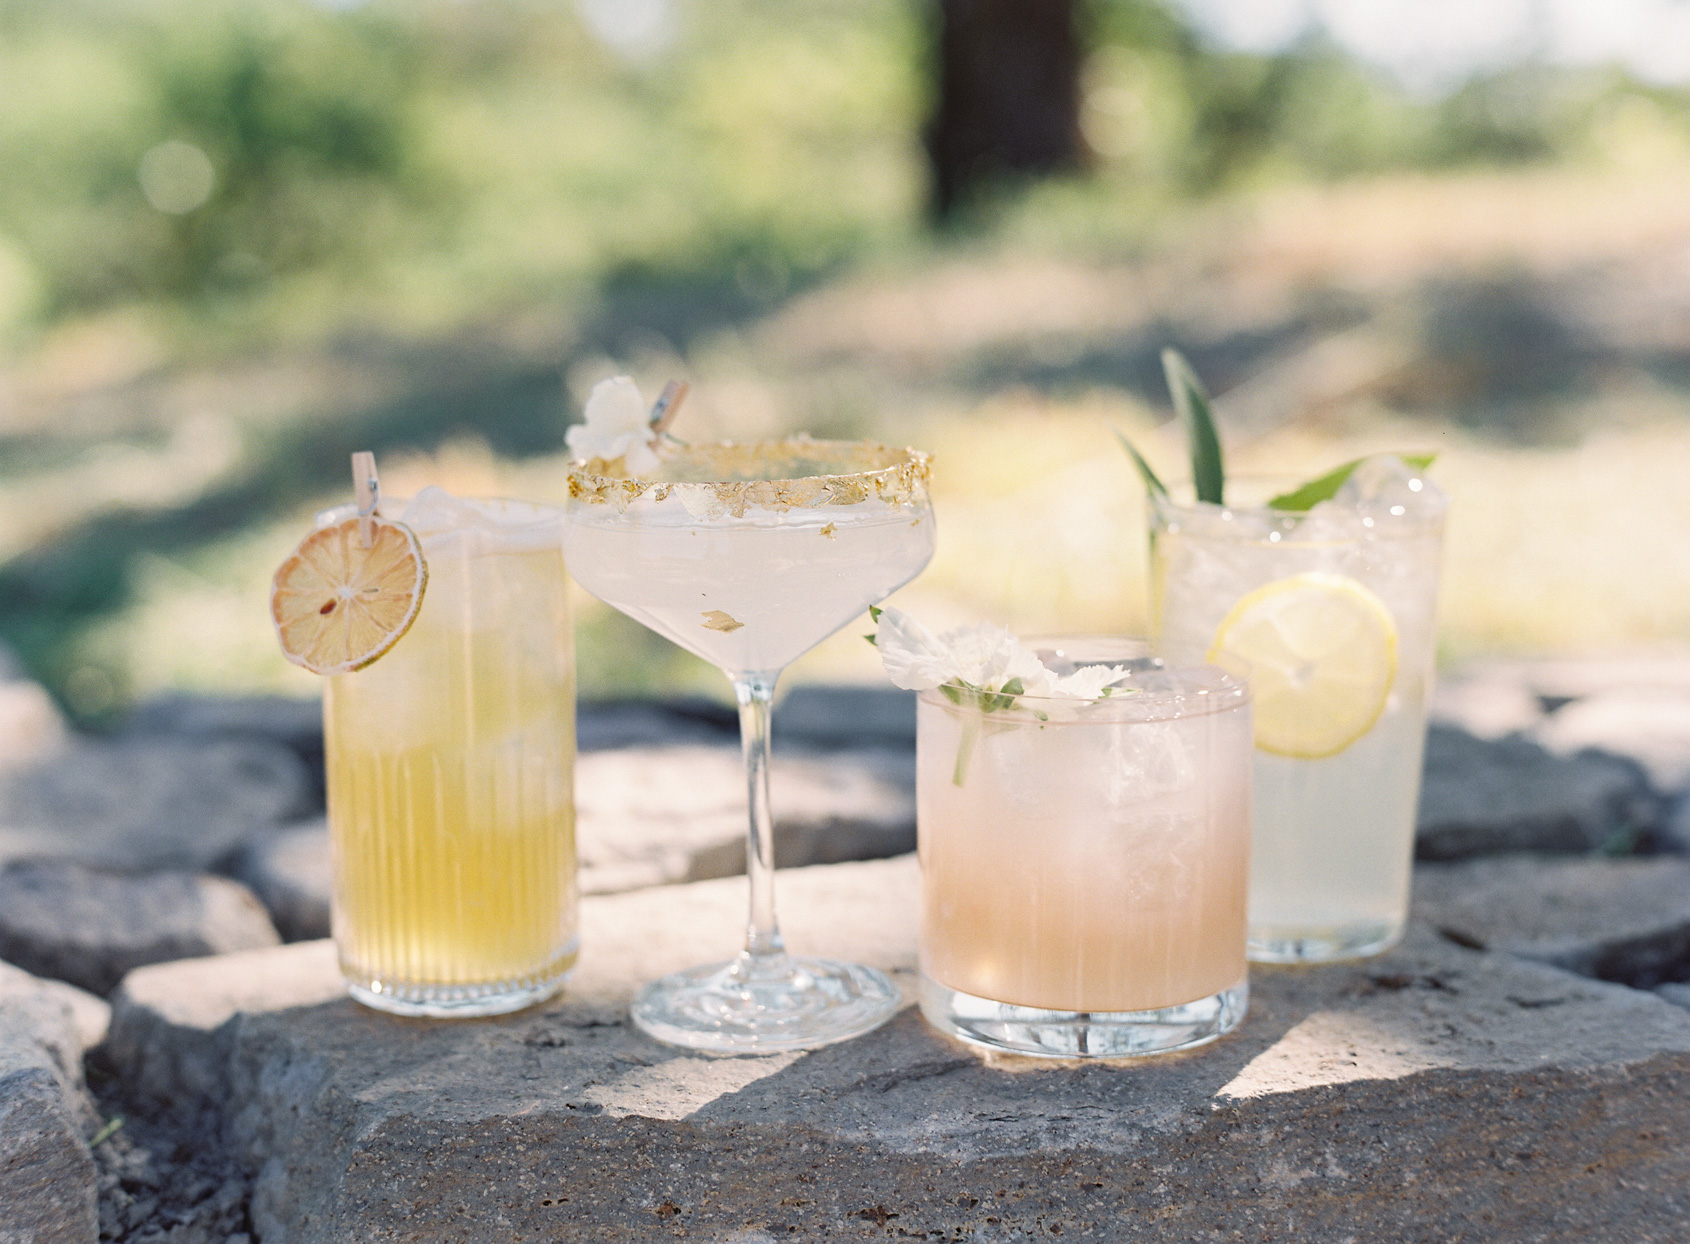 cocktails sitting on stones outdoors